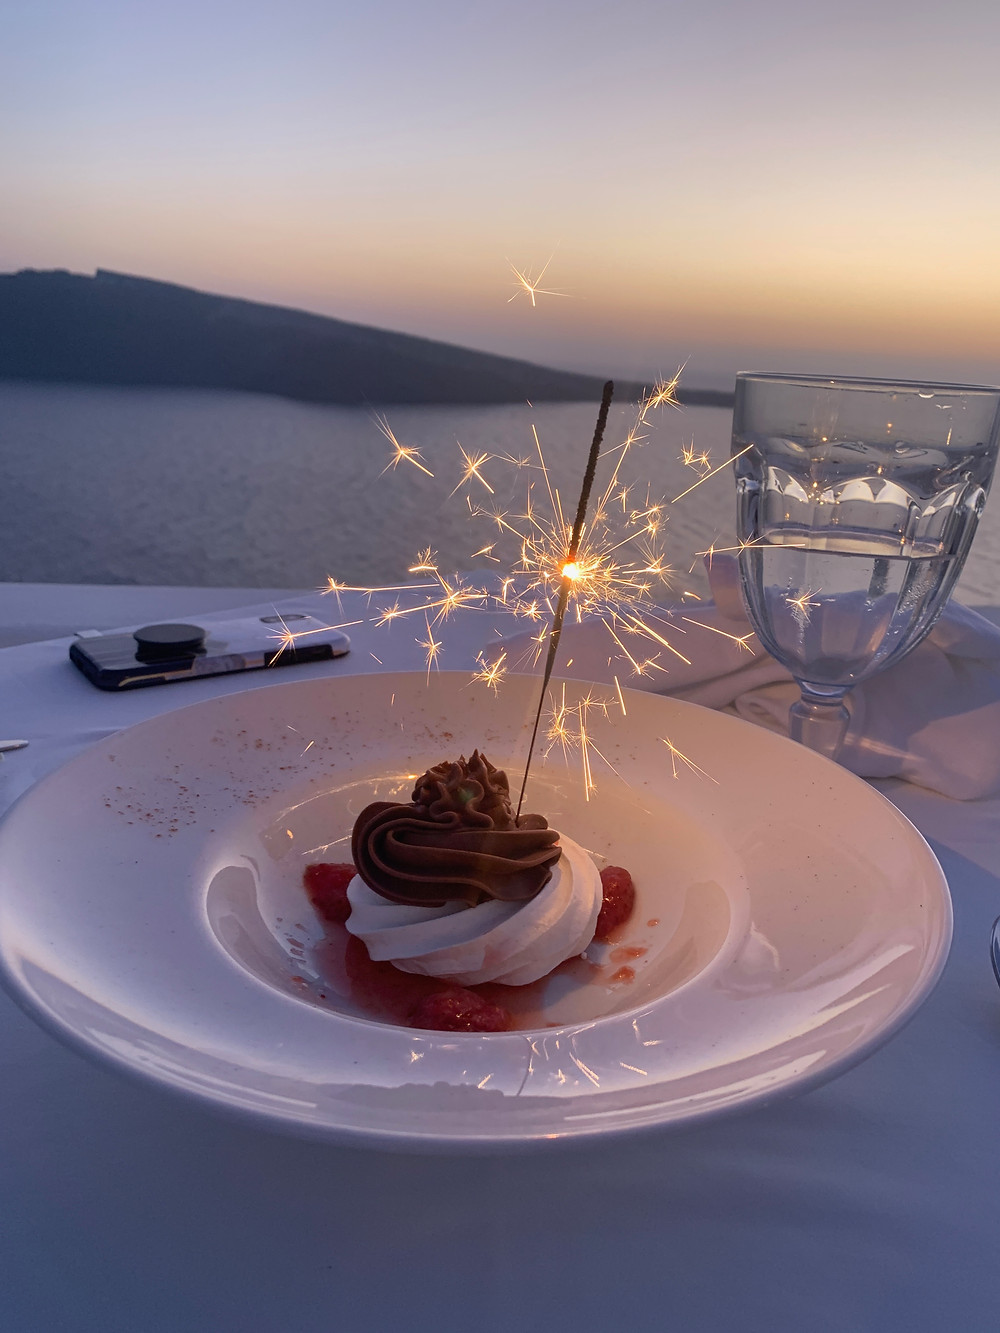 Volcano Surprise dessert at Fenari Villas and Restaurant in Oia Santorini Greece